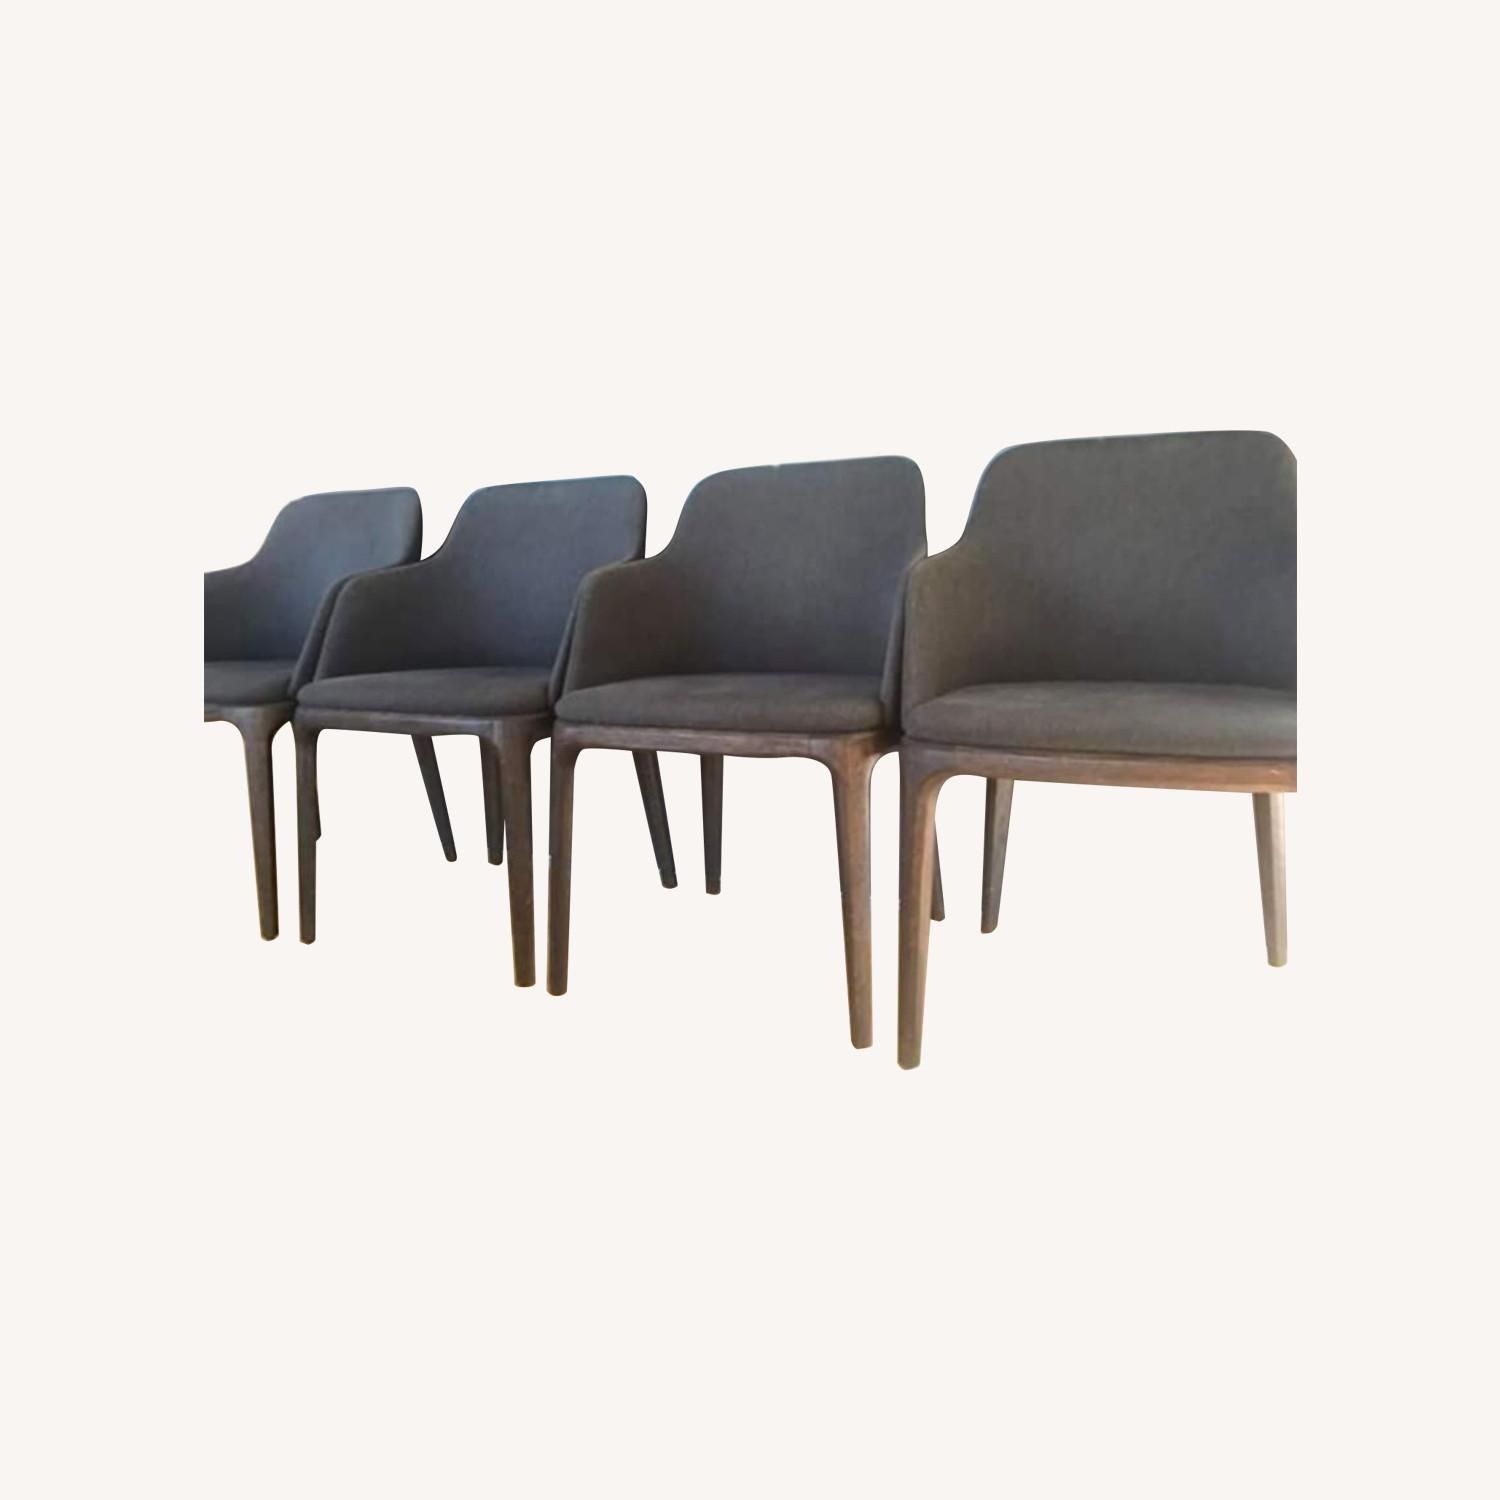 Poliform Sillon Grace Dining Chairs (Set of 4) - image-0